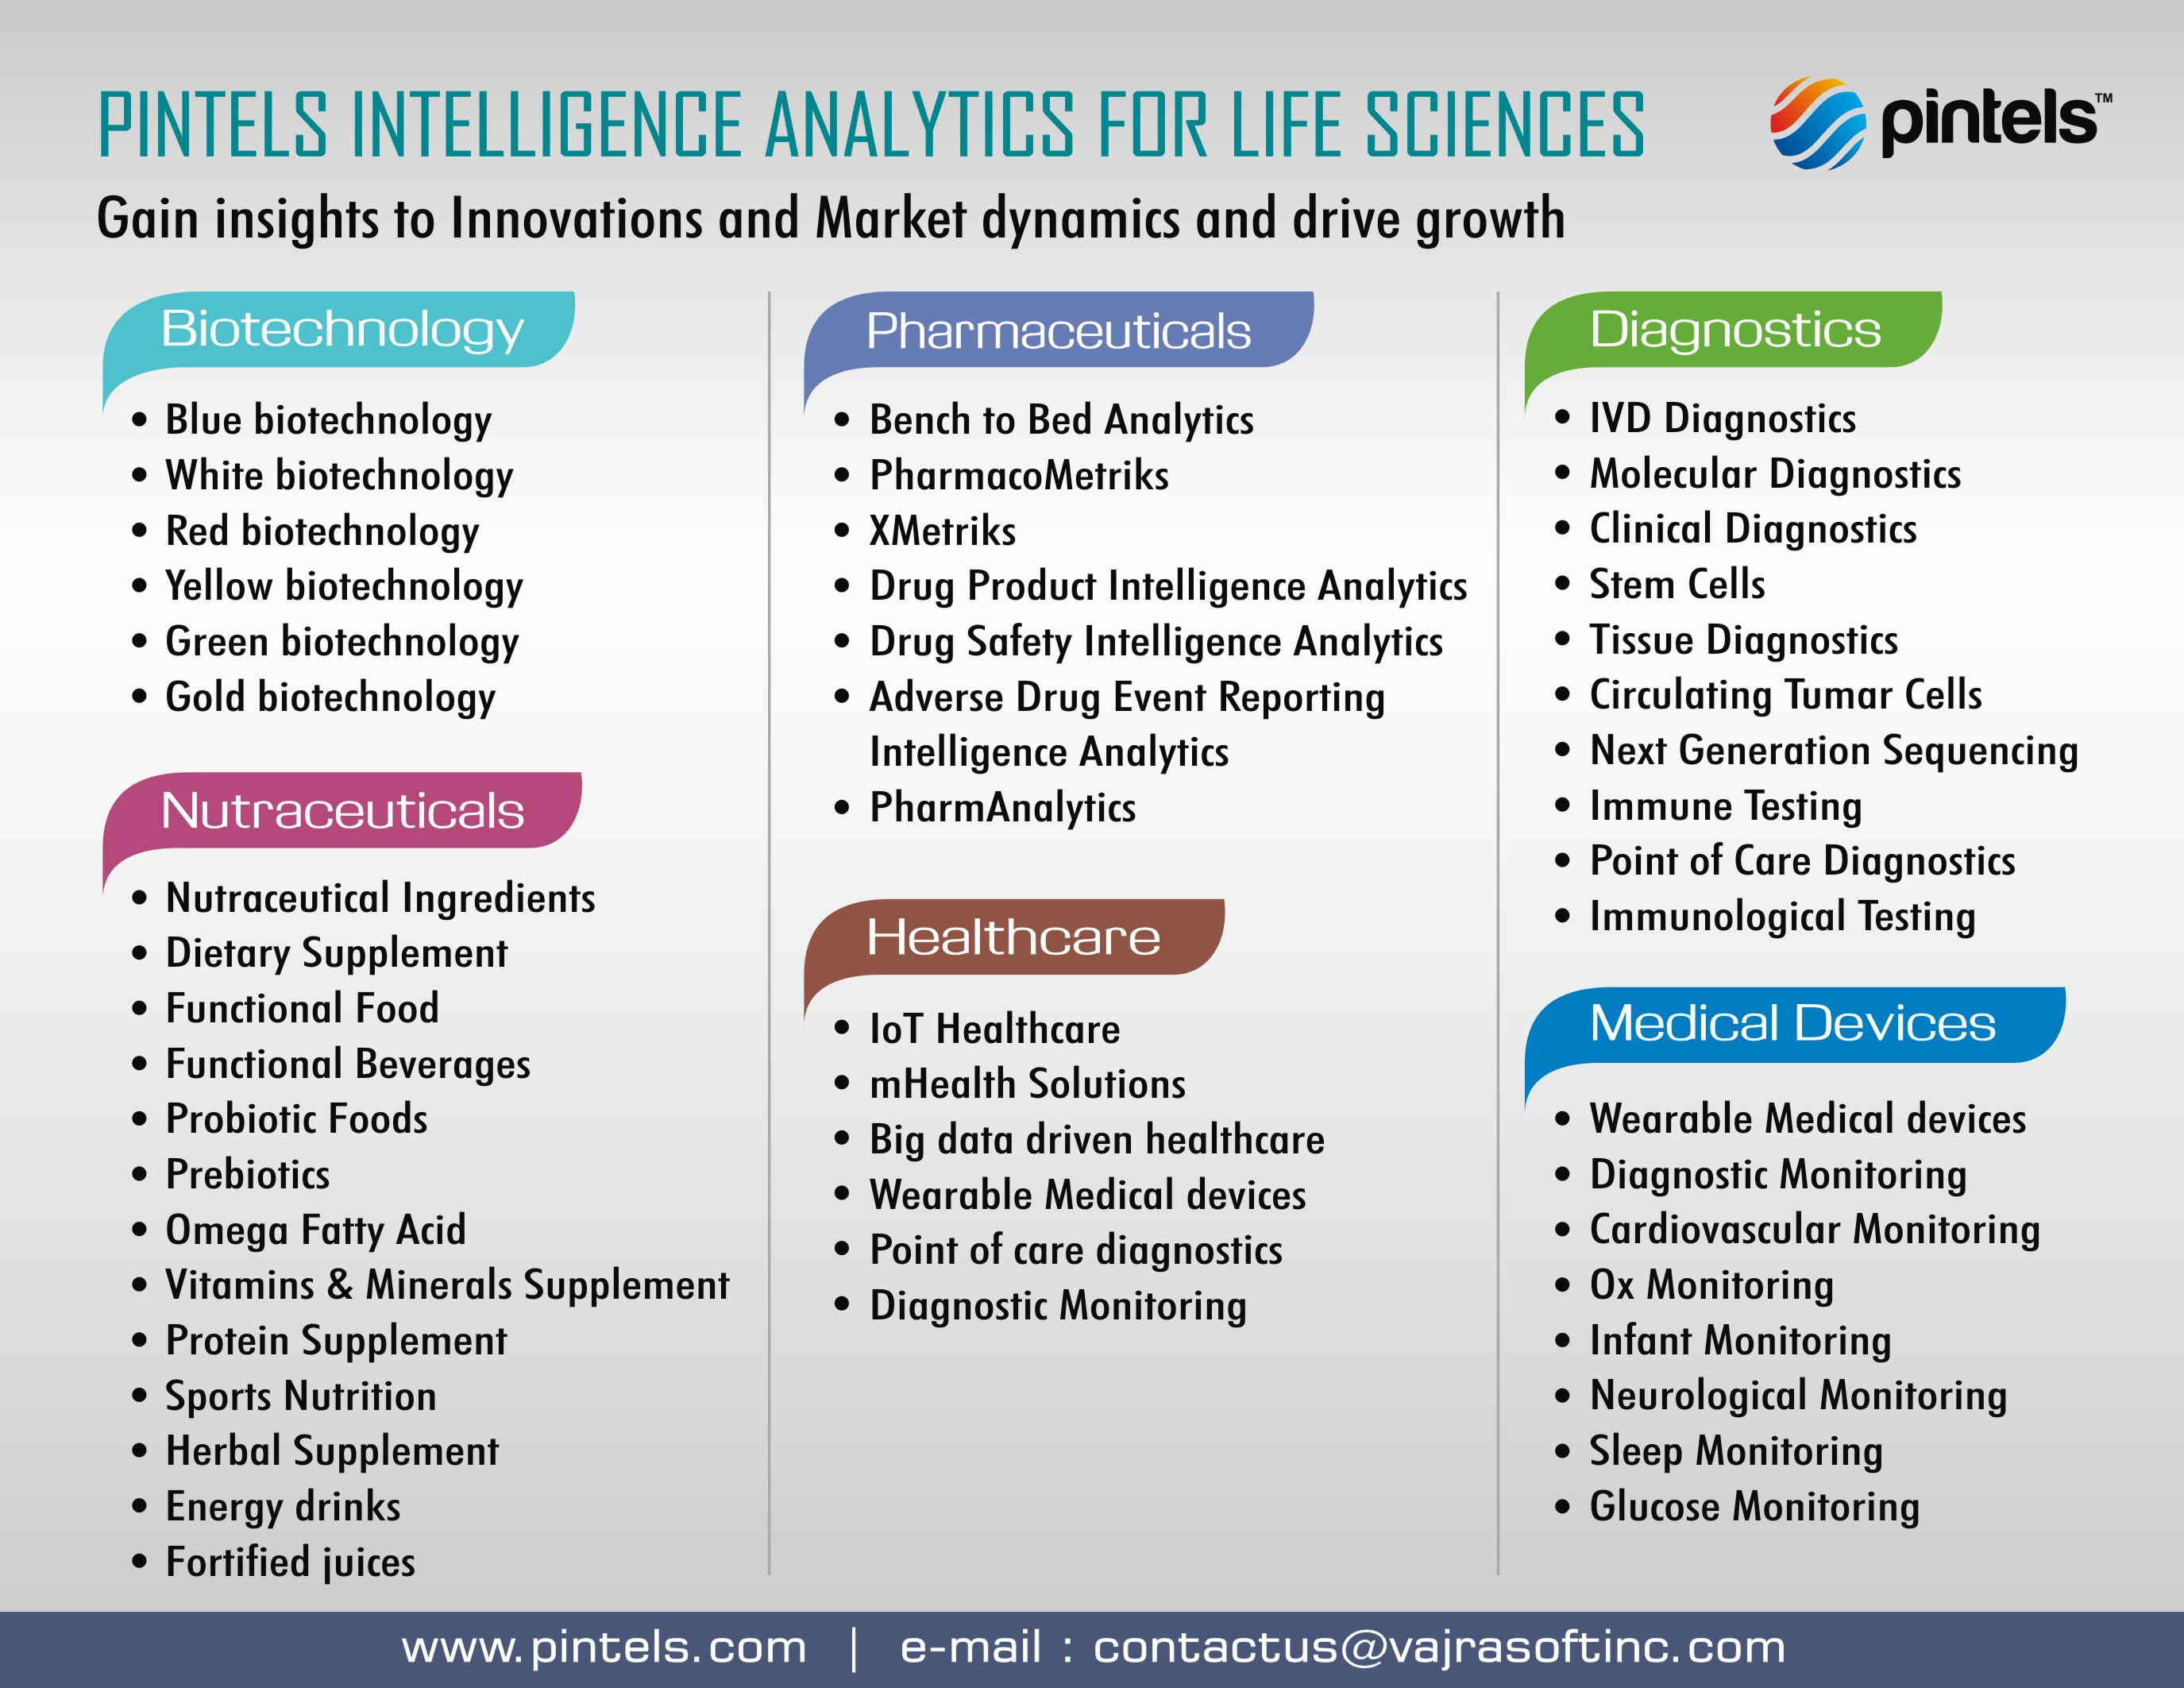 Life Sciences Innovations